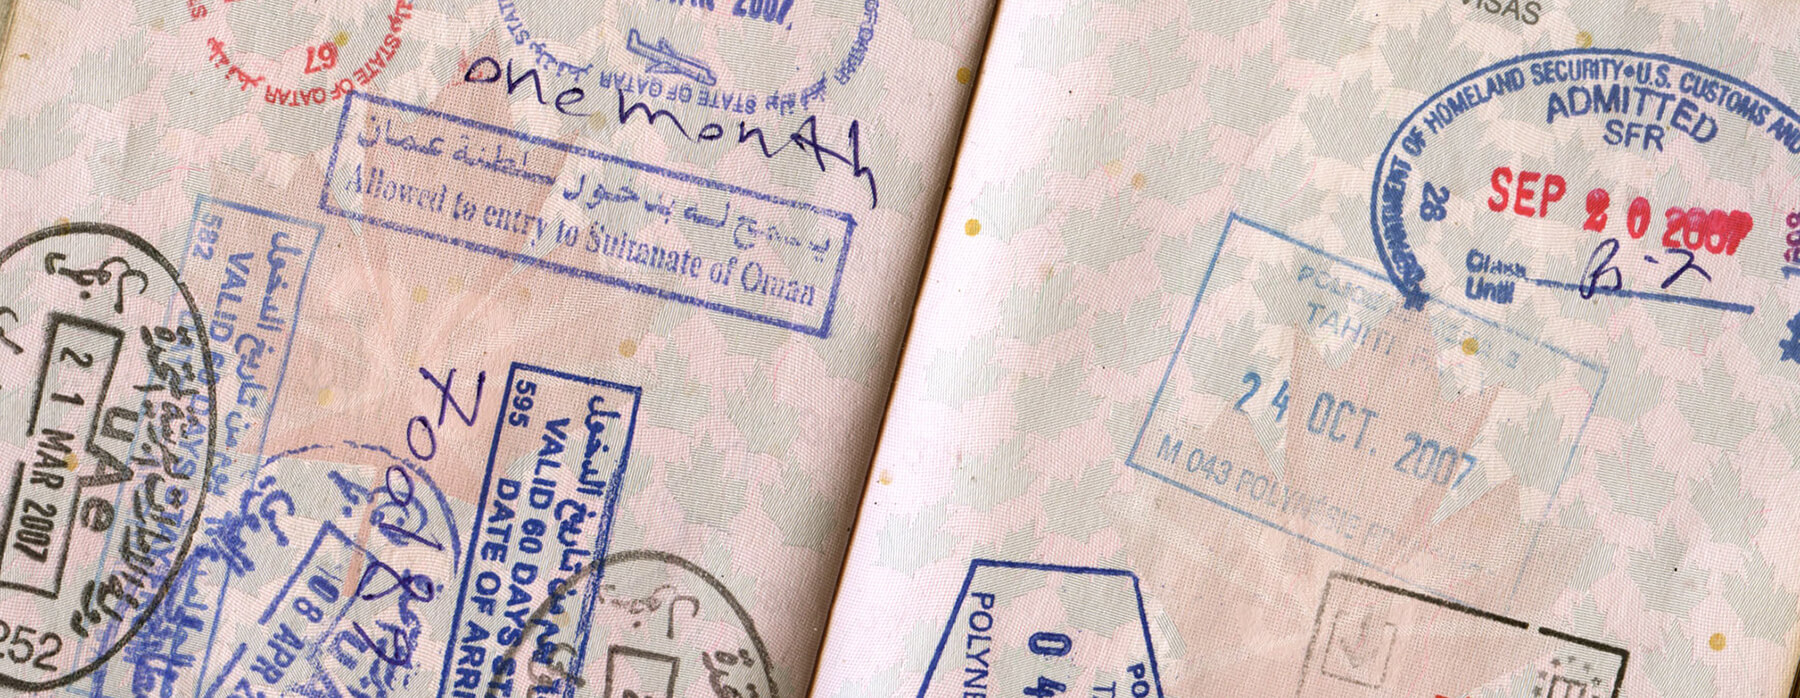 Border control stamps in passport